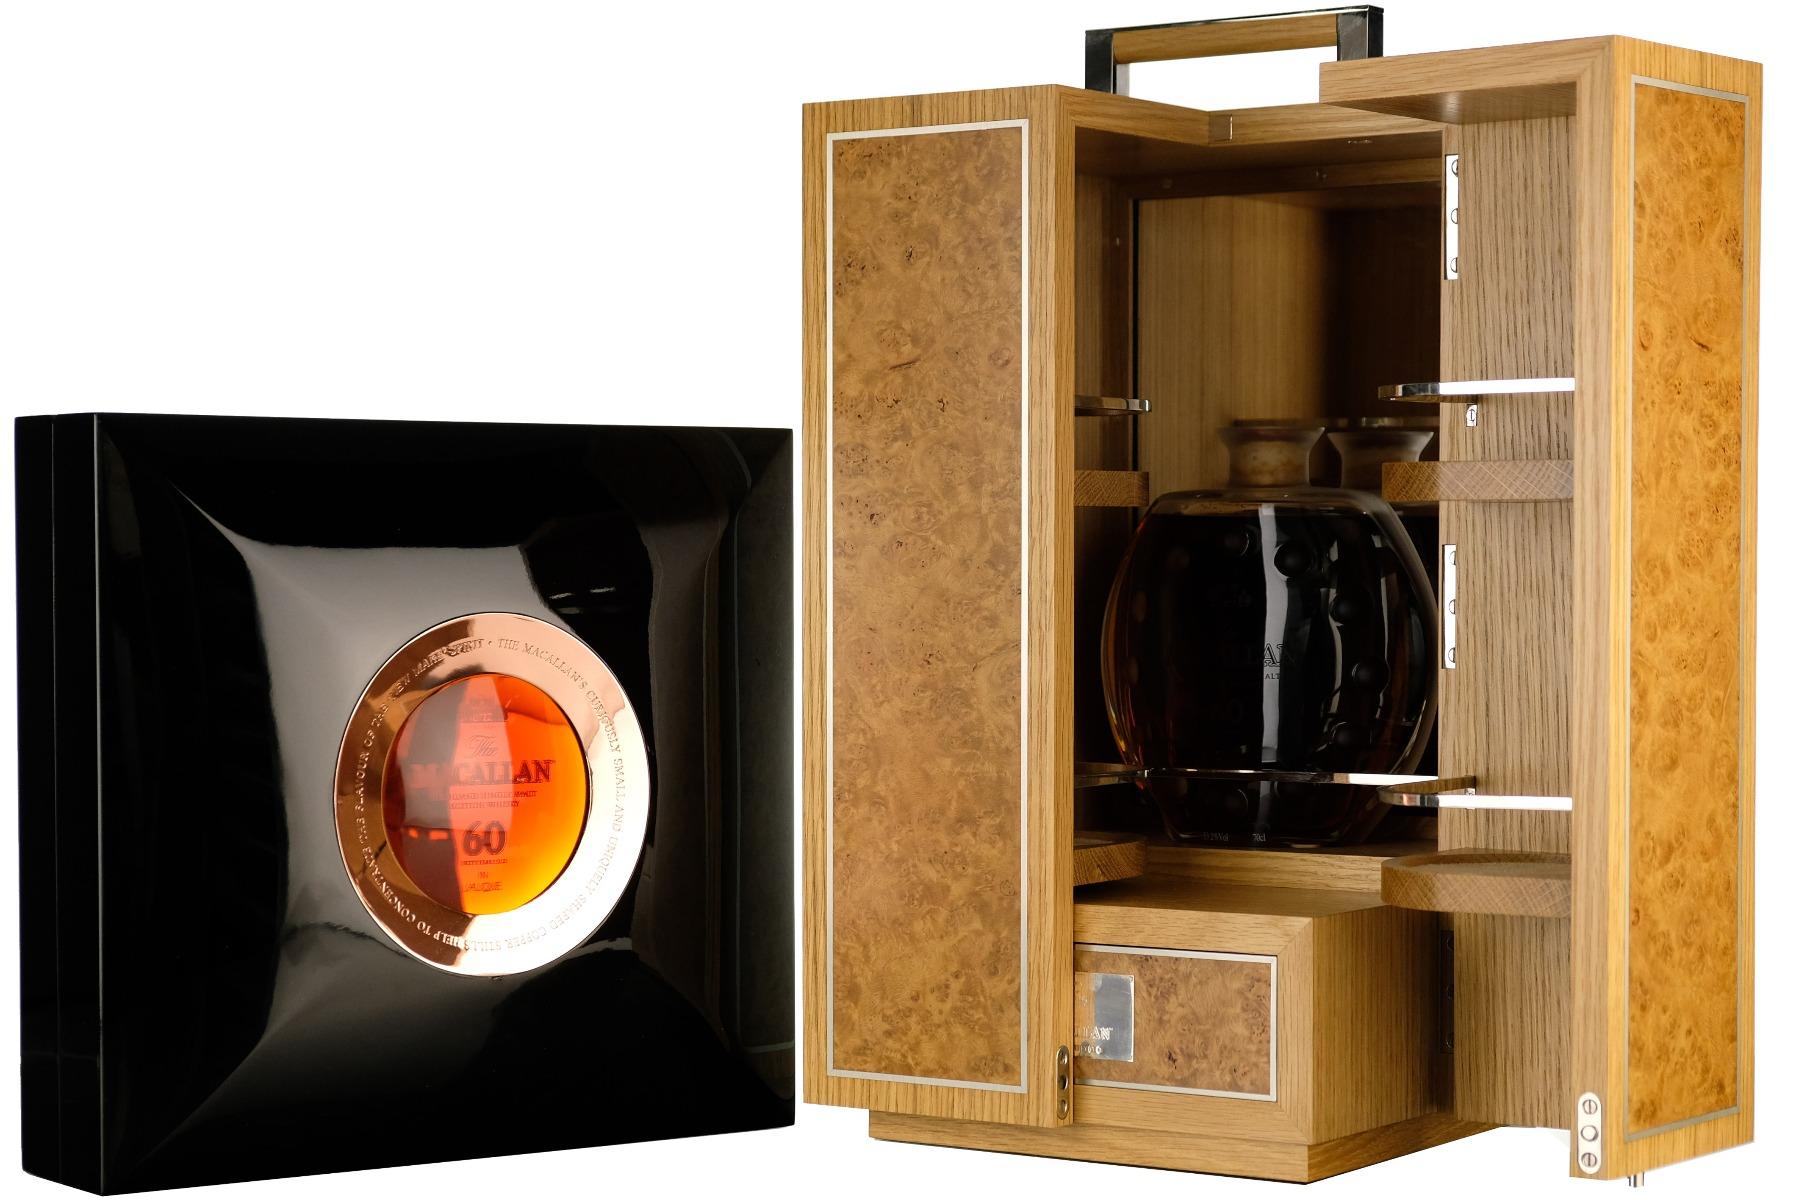 macallan 60 year old - lalique linley edition - 1 of only 3